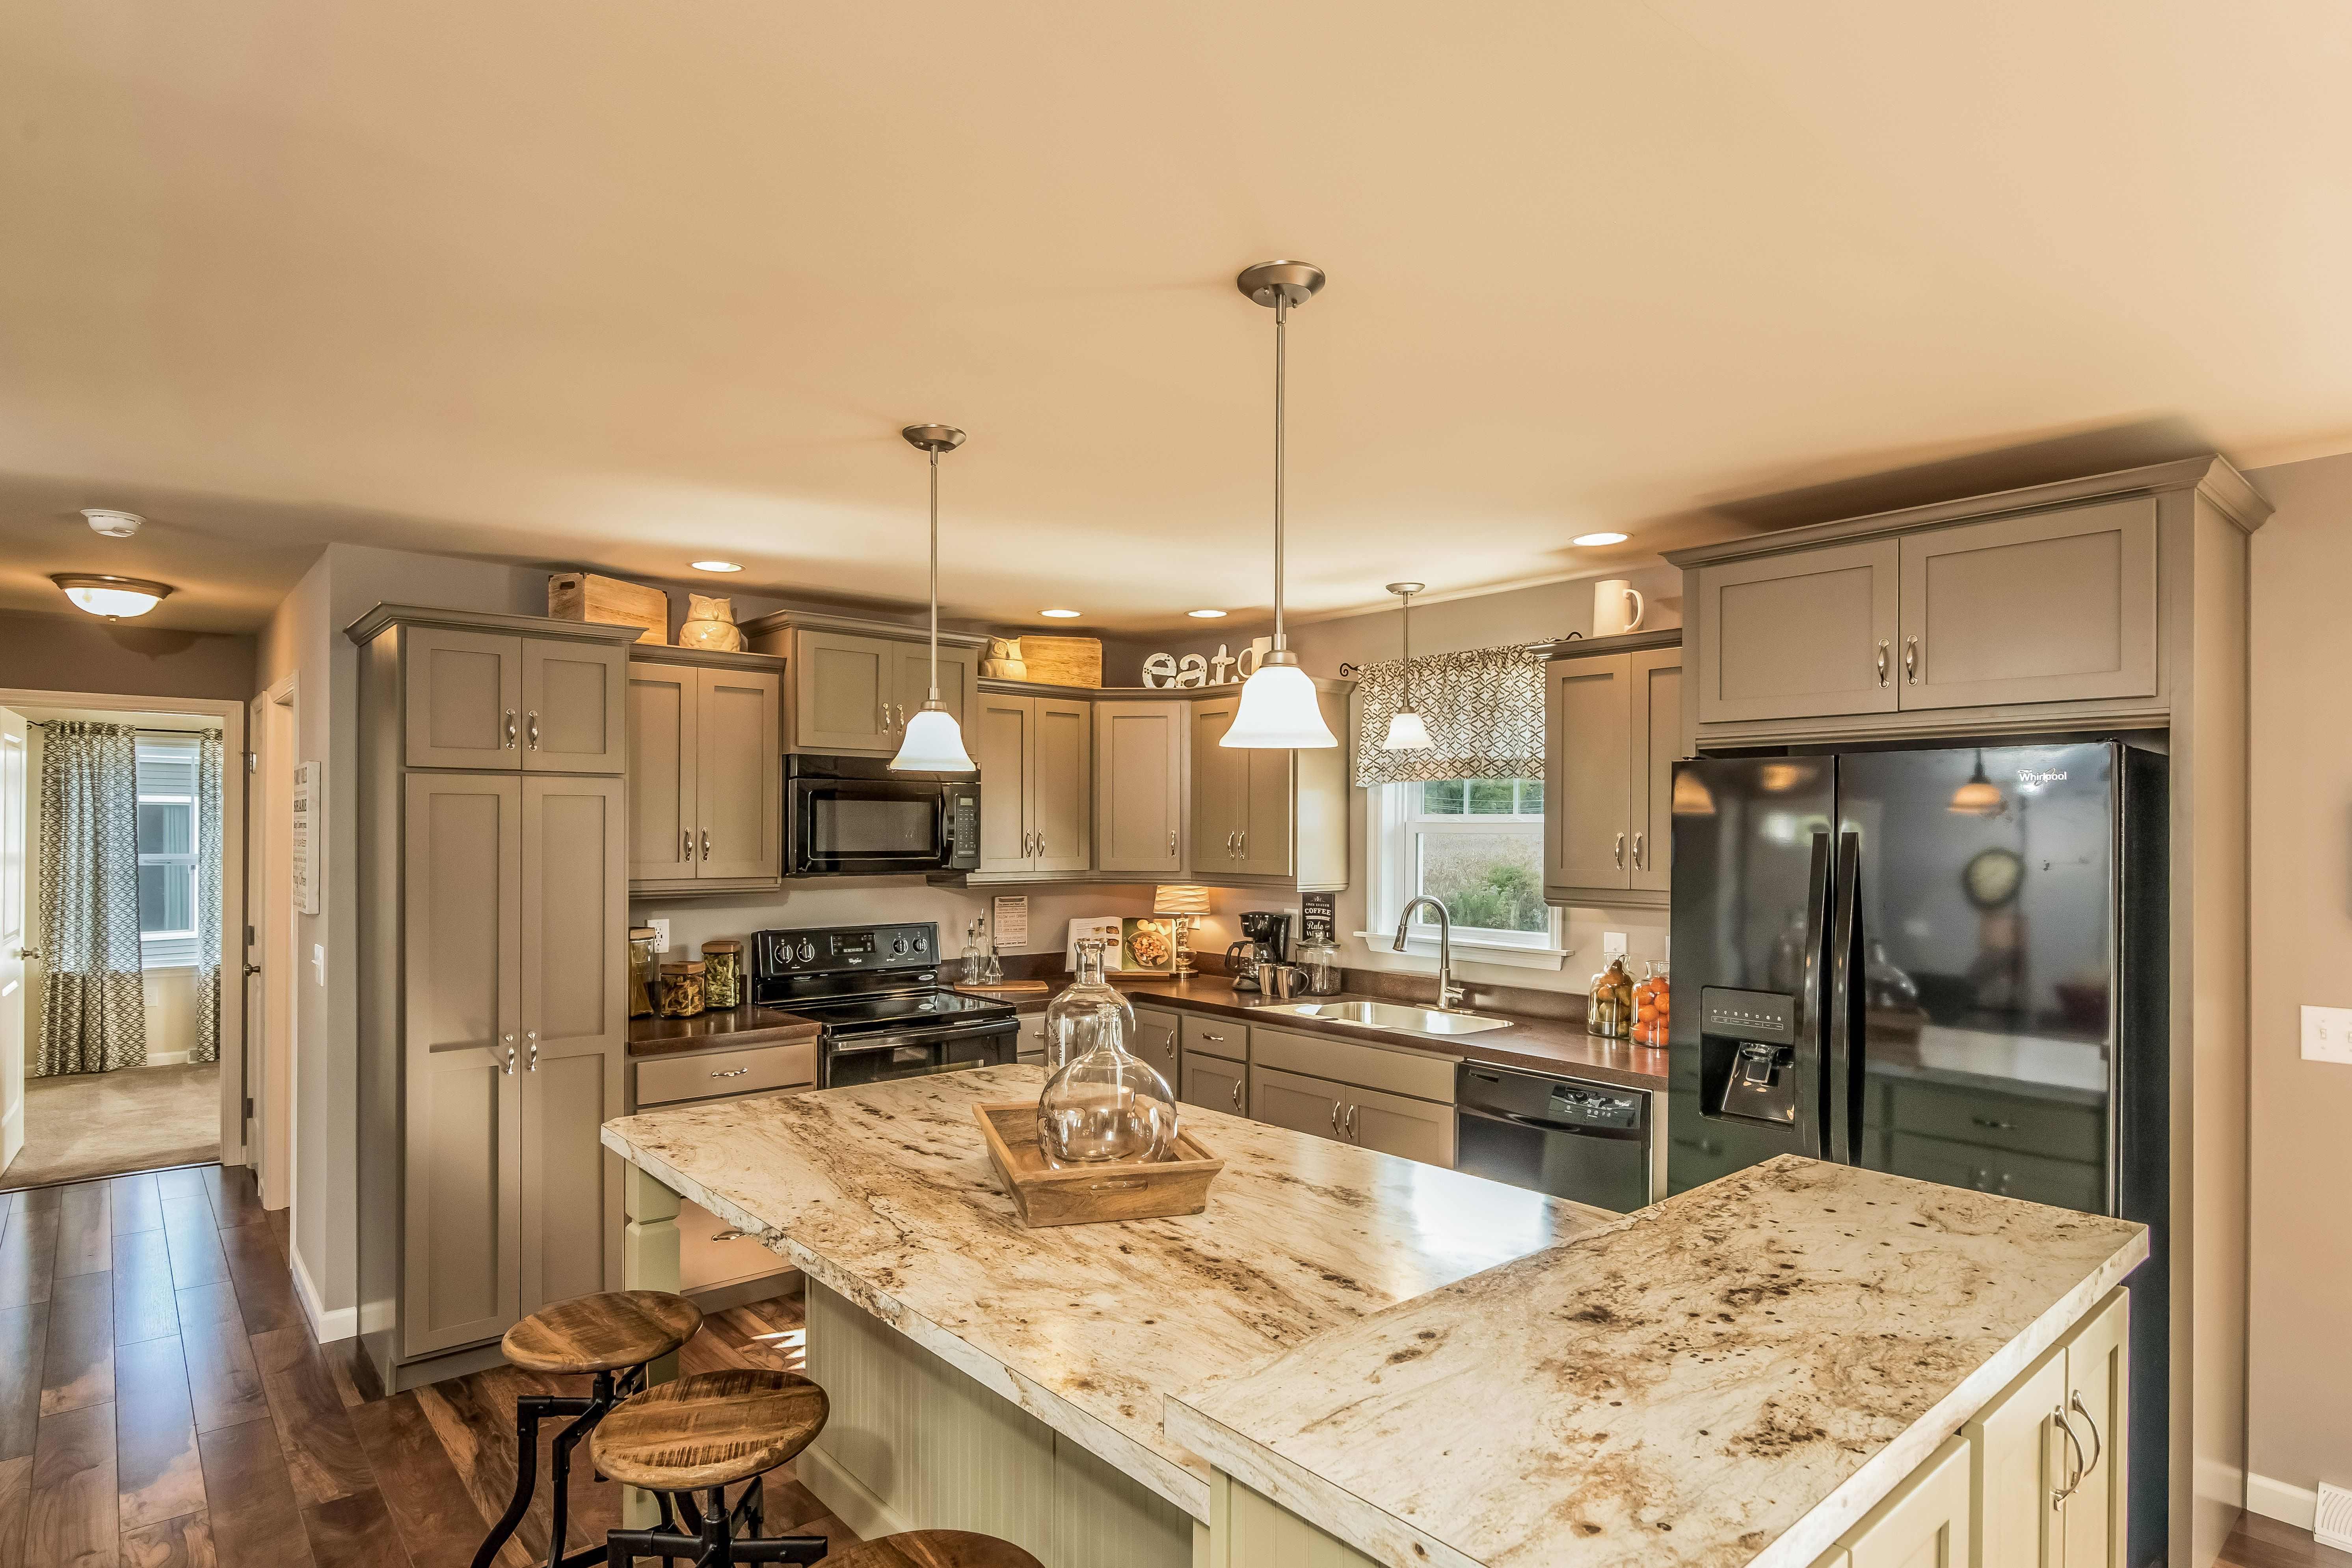 this kitchen features our warm stone paint color painted kitchen cabinetry design on kitchen cabinets design id=32090